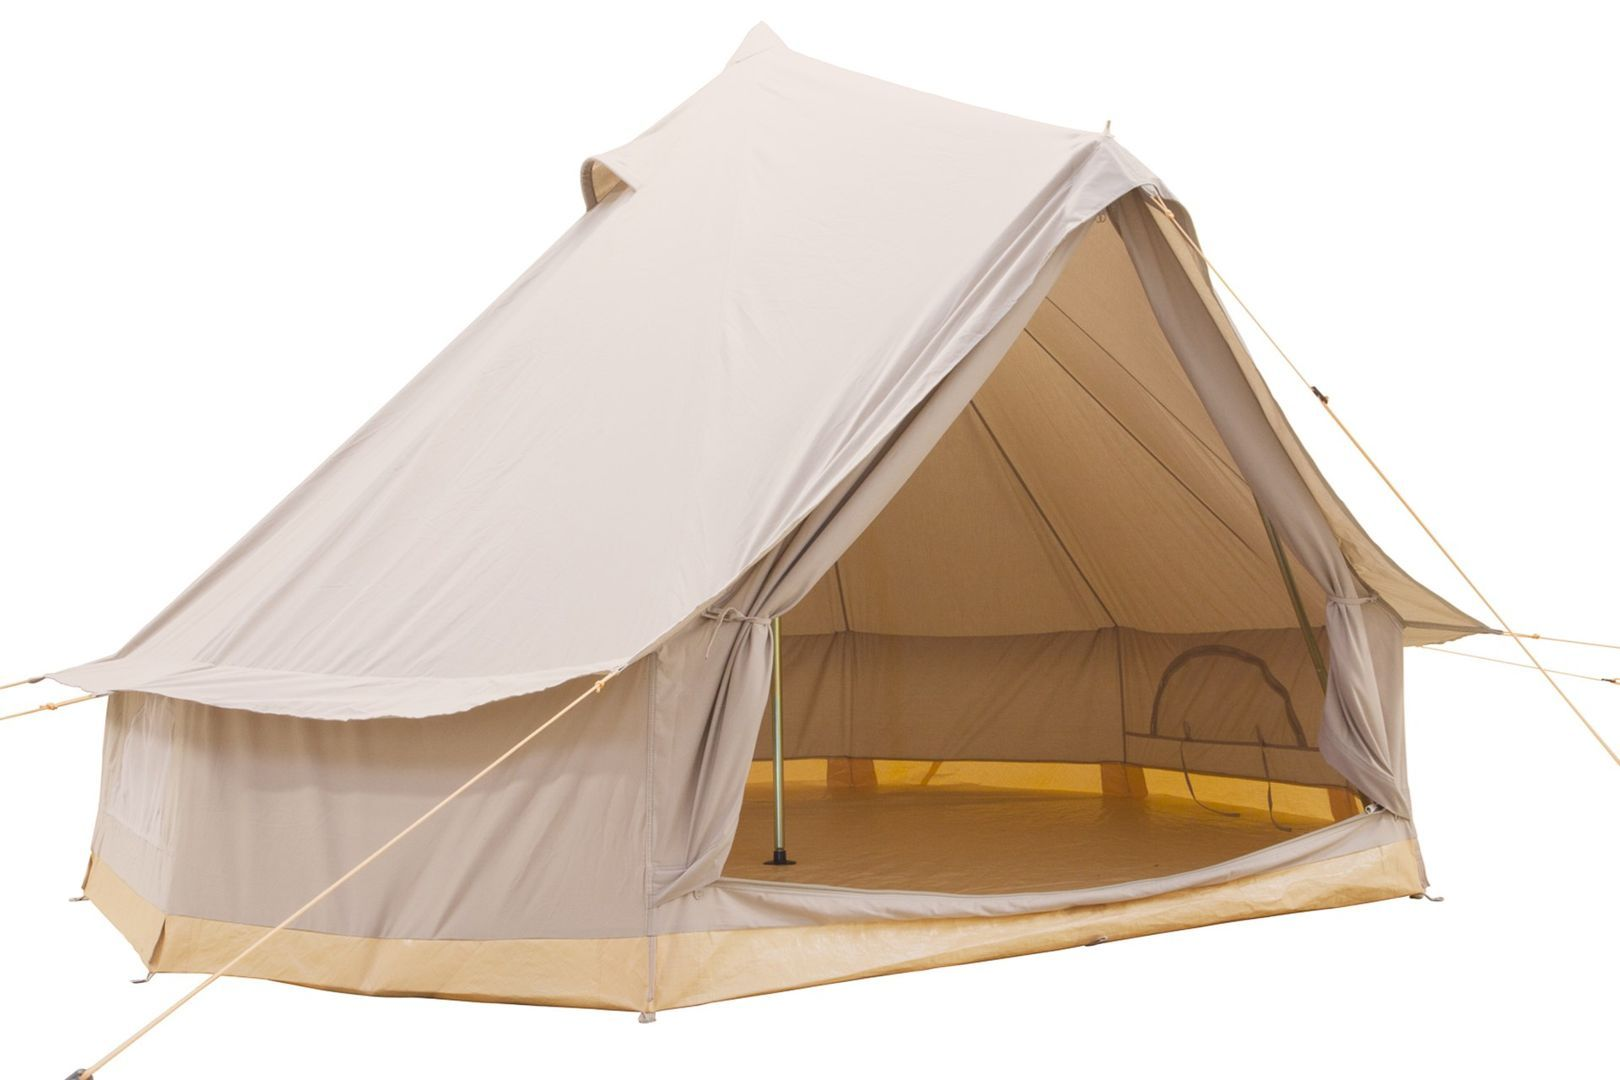 online retailer 25ef0 318aa Stylish camping equipment | Glamping | Tent camping, Tent ...